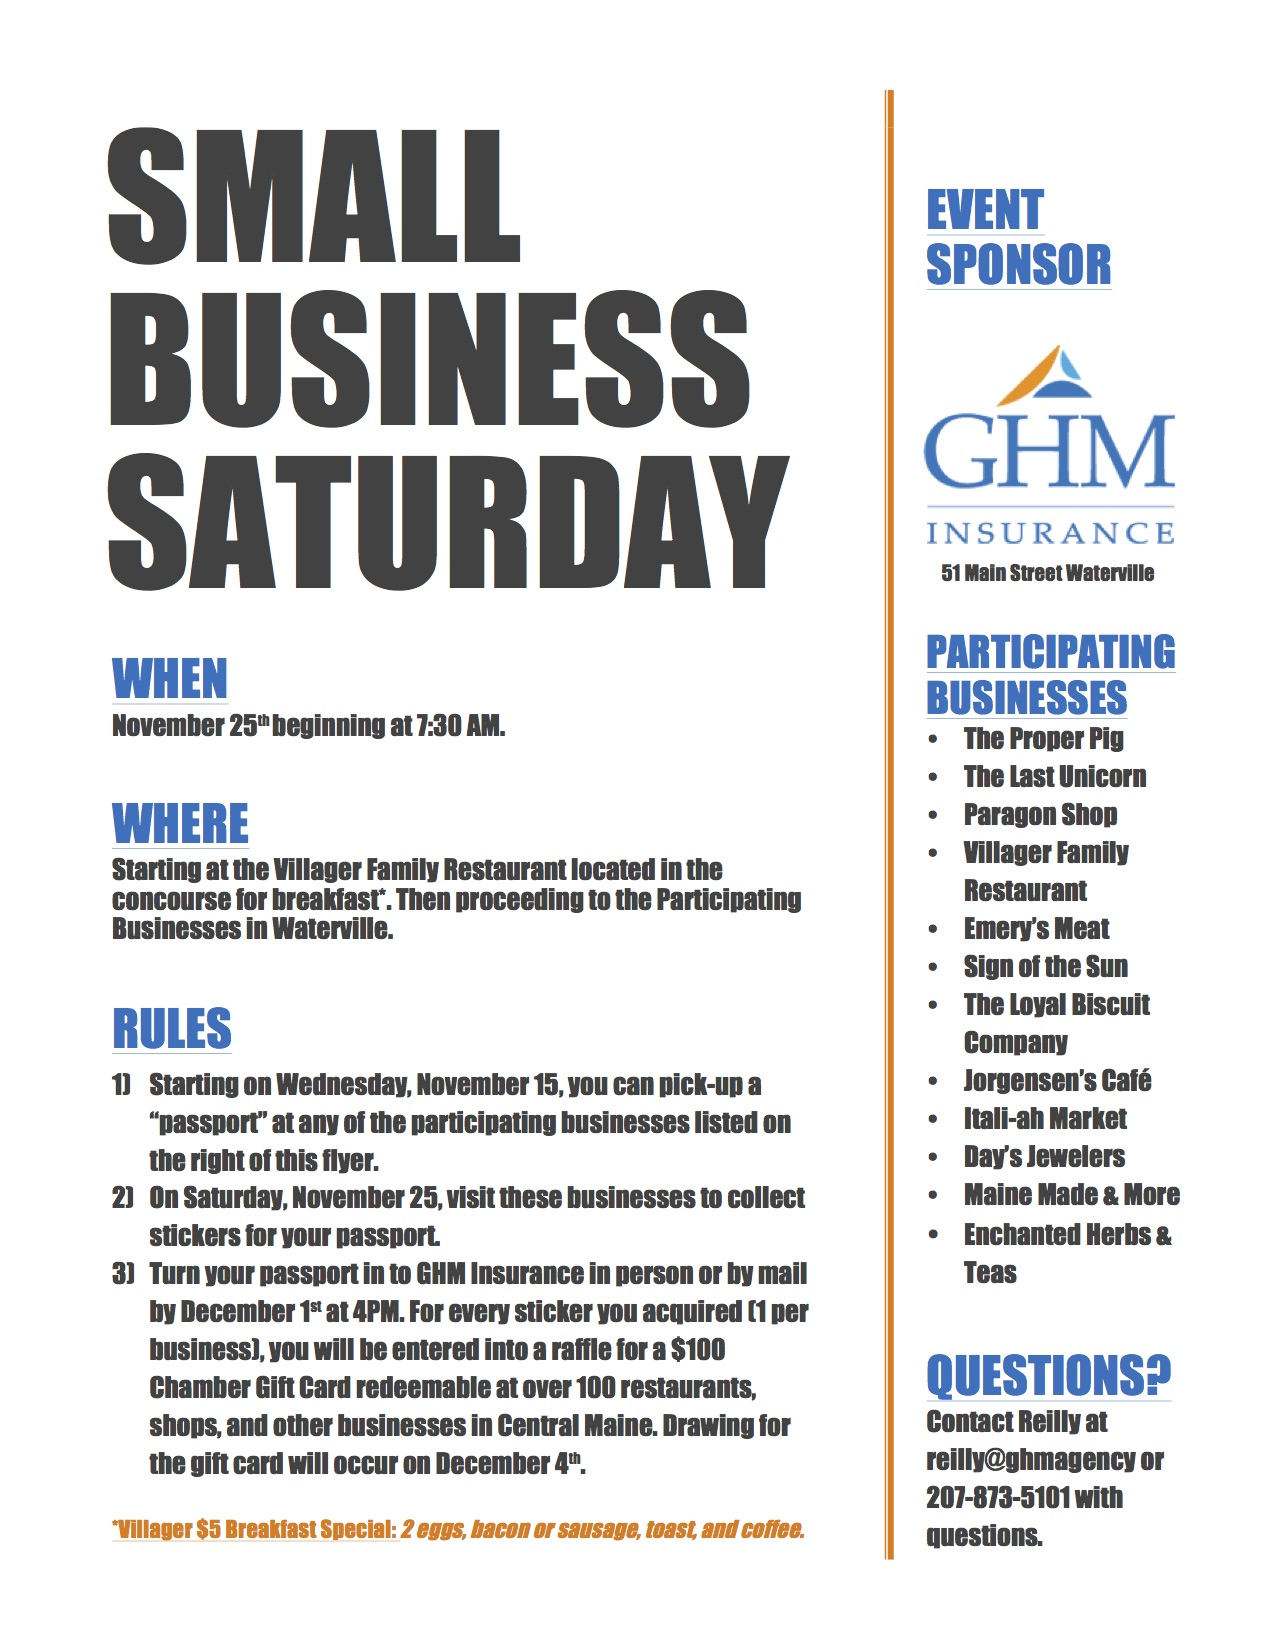 Ghm Insurance Blog Small Business Saturday 2017